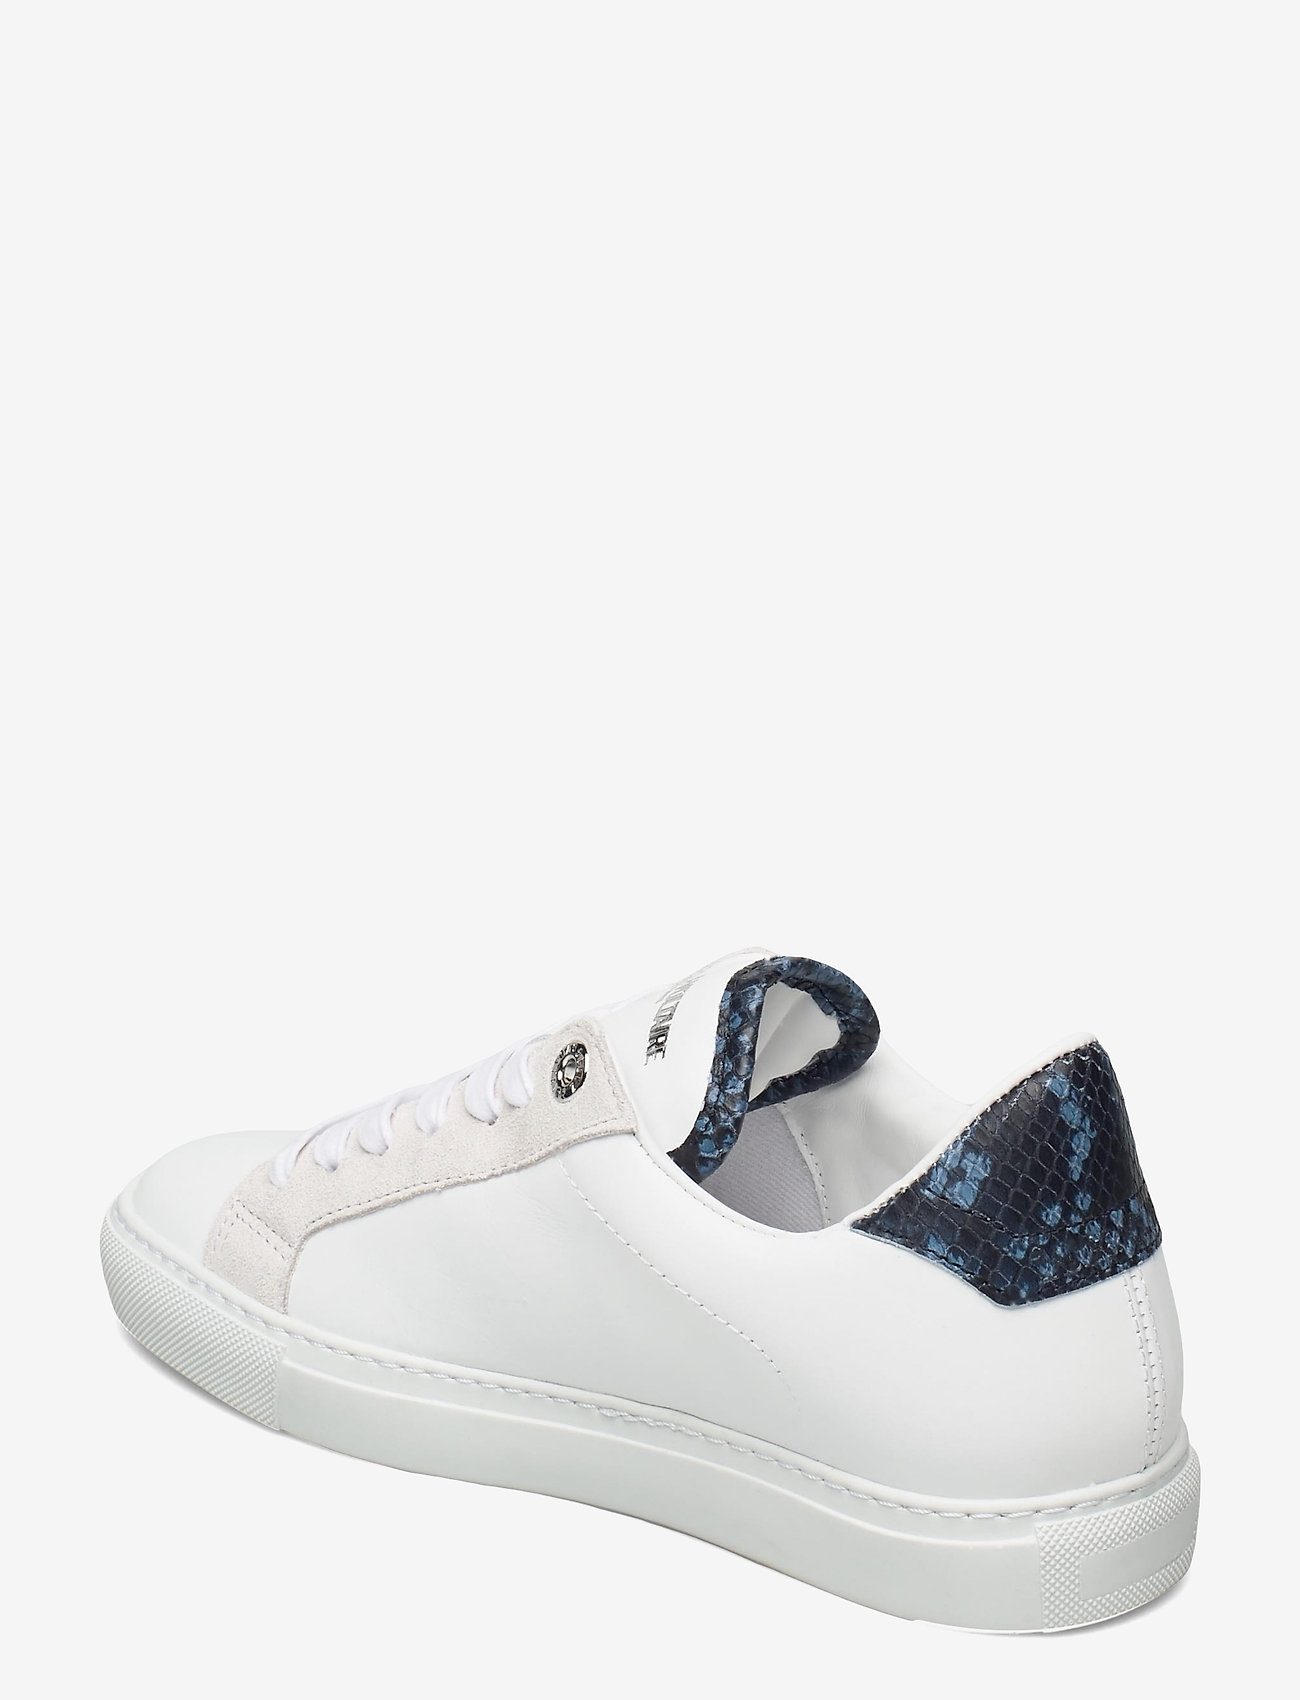 Zadig & Voltaire - ZV1747 WILD + SMOOTH CALFSKIN - lave sneakers - blanc deep - 2